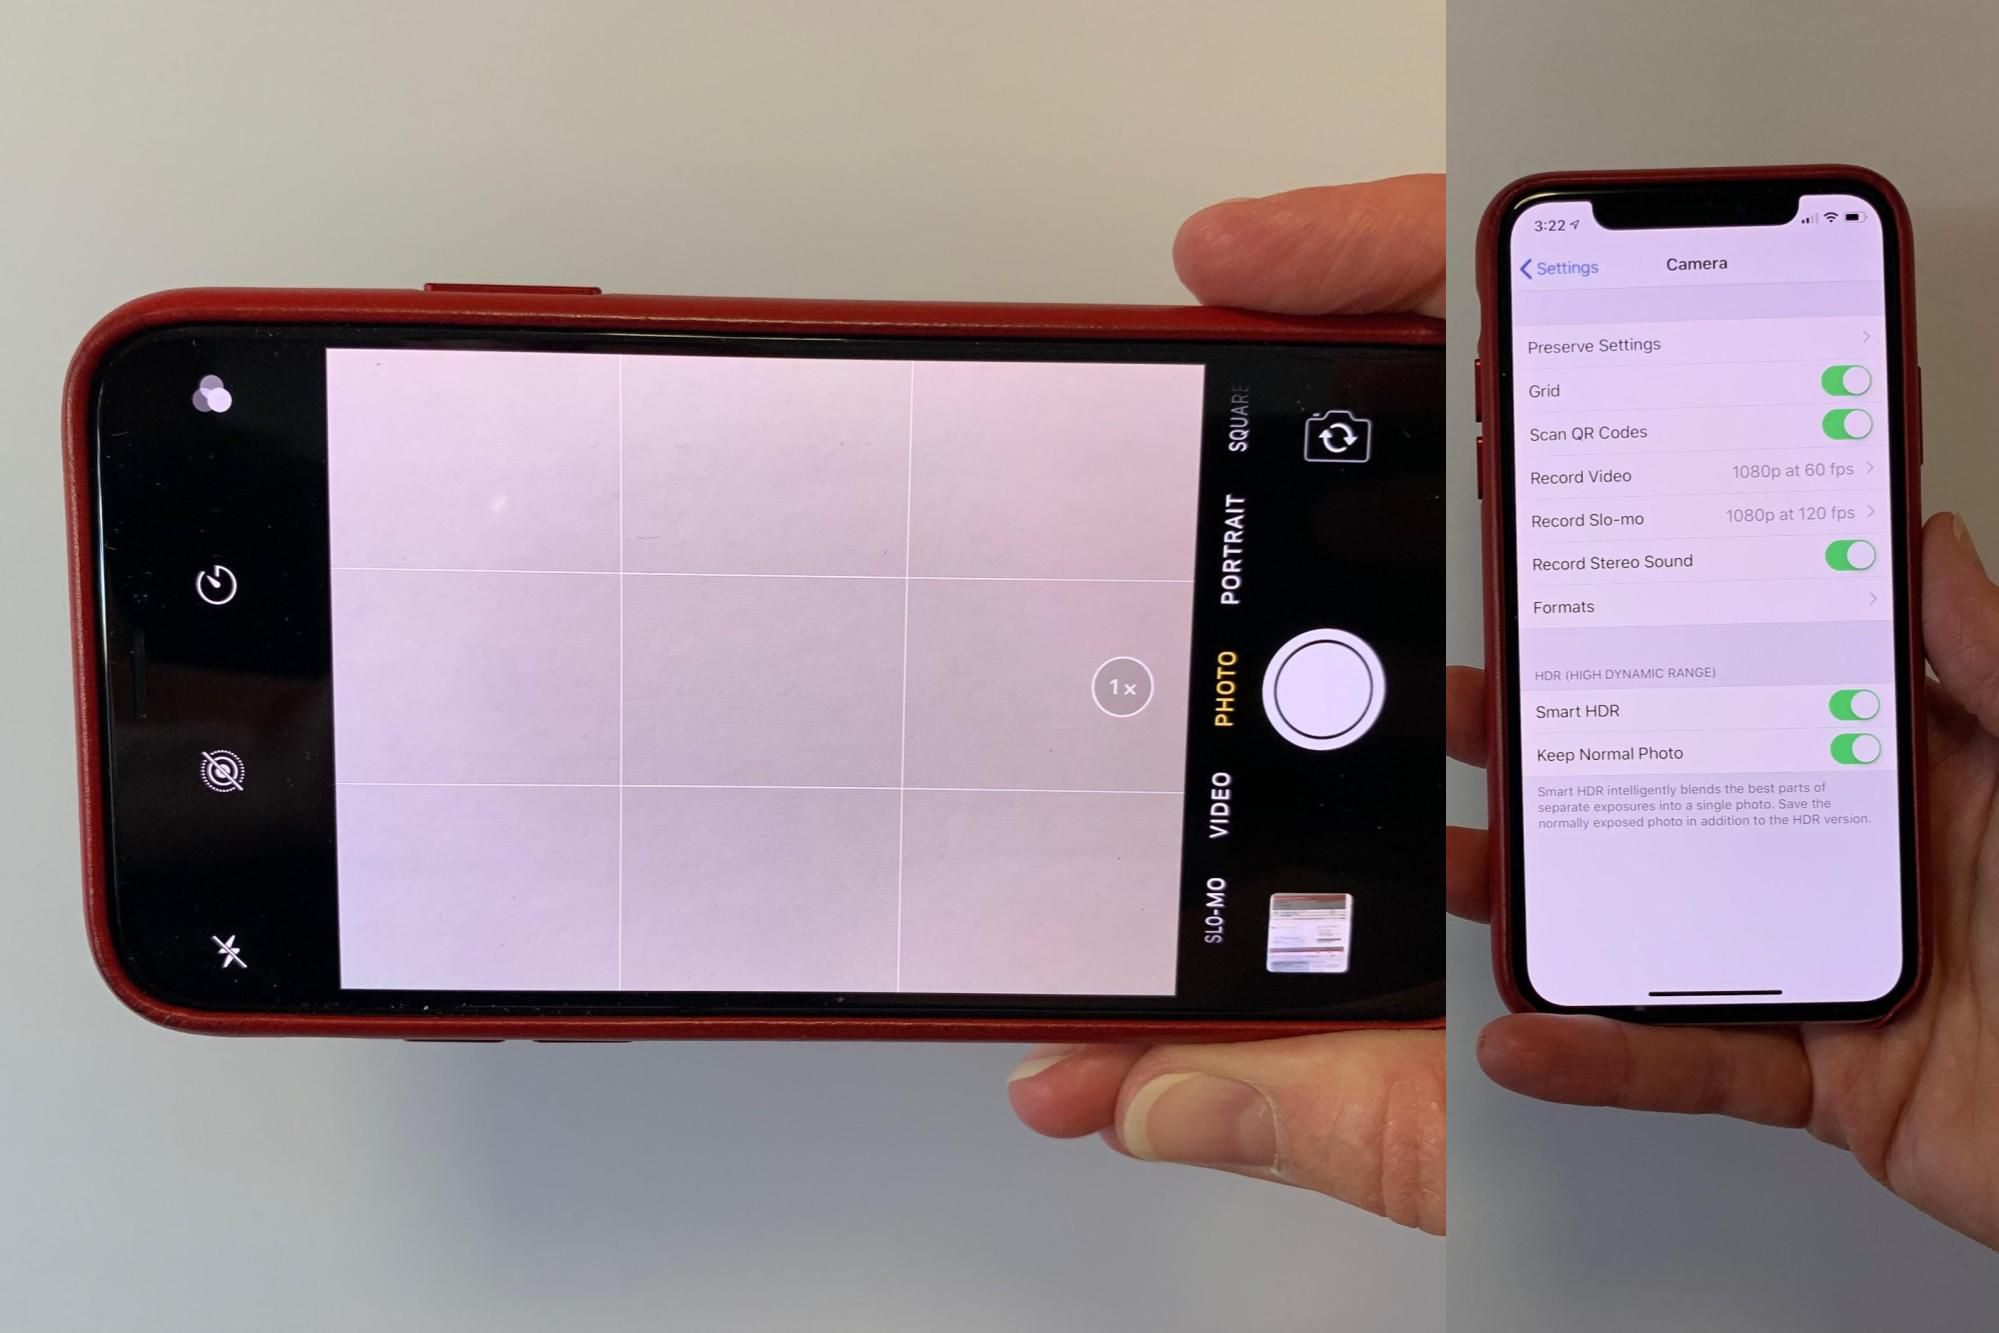 Photo shows Settings > Camera > Grid on (right); with Camera app with grid displayed (left)